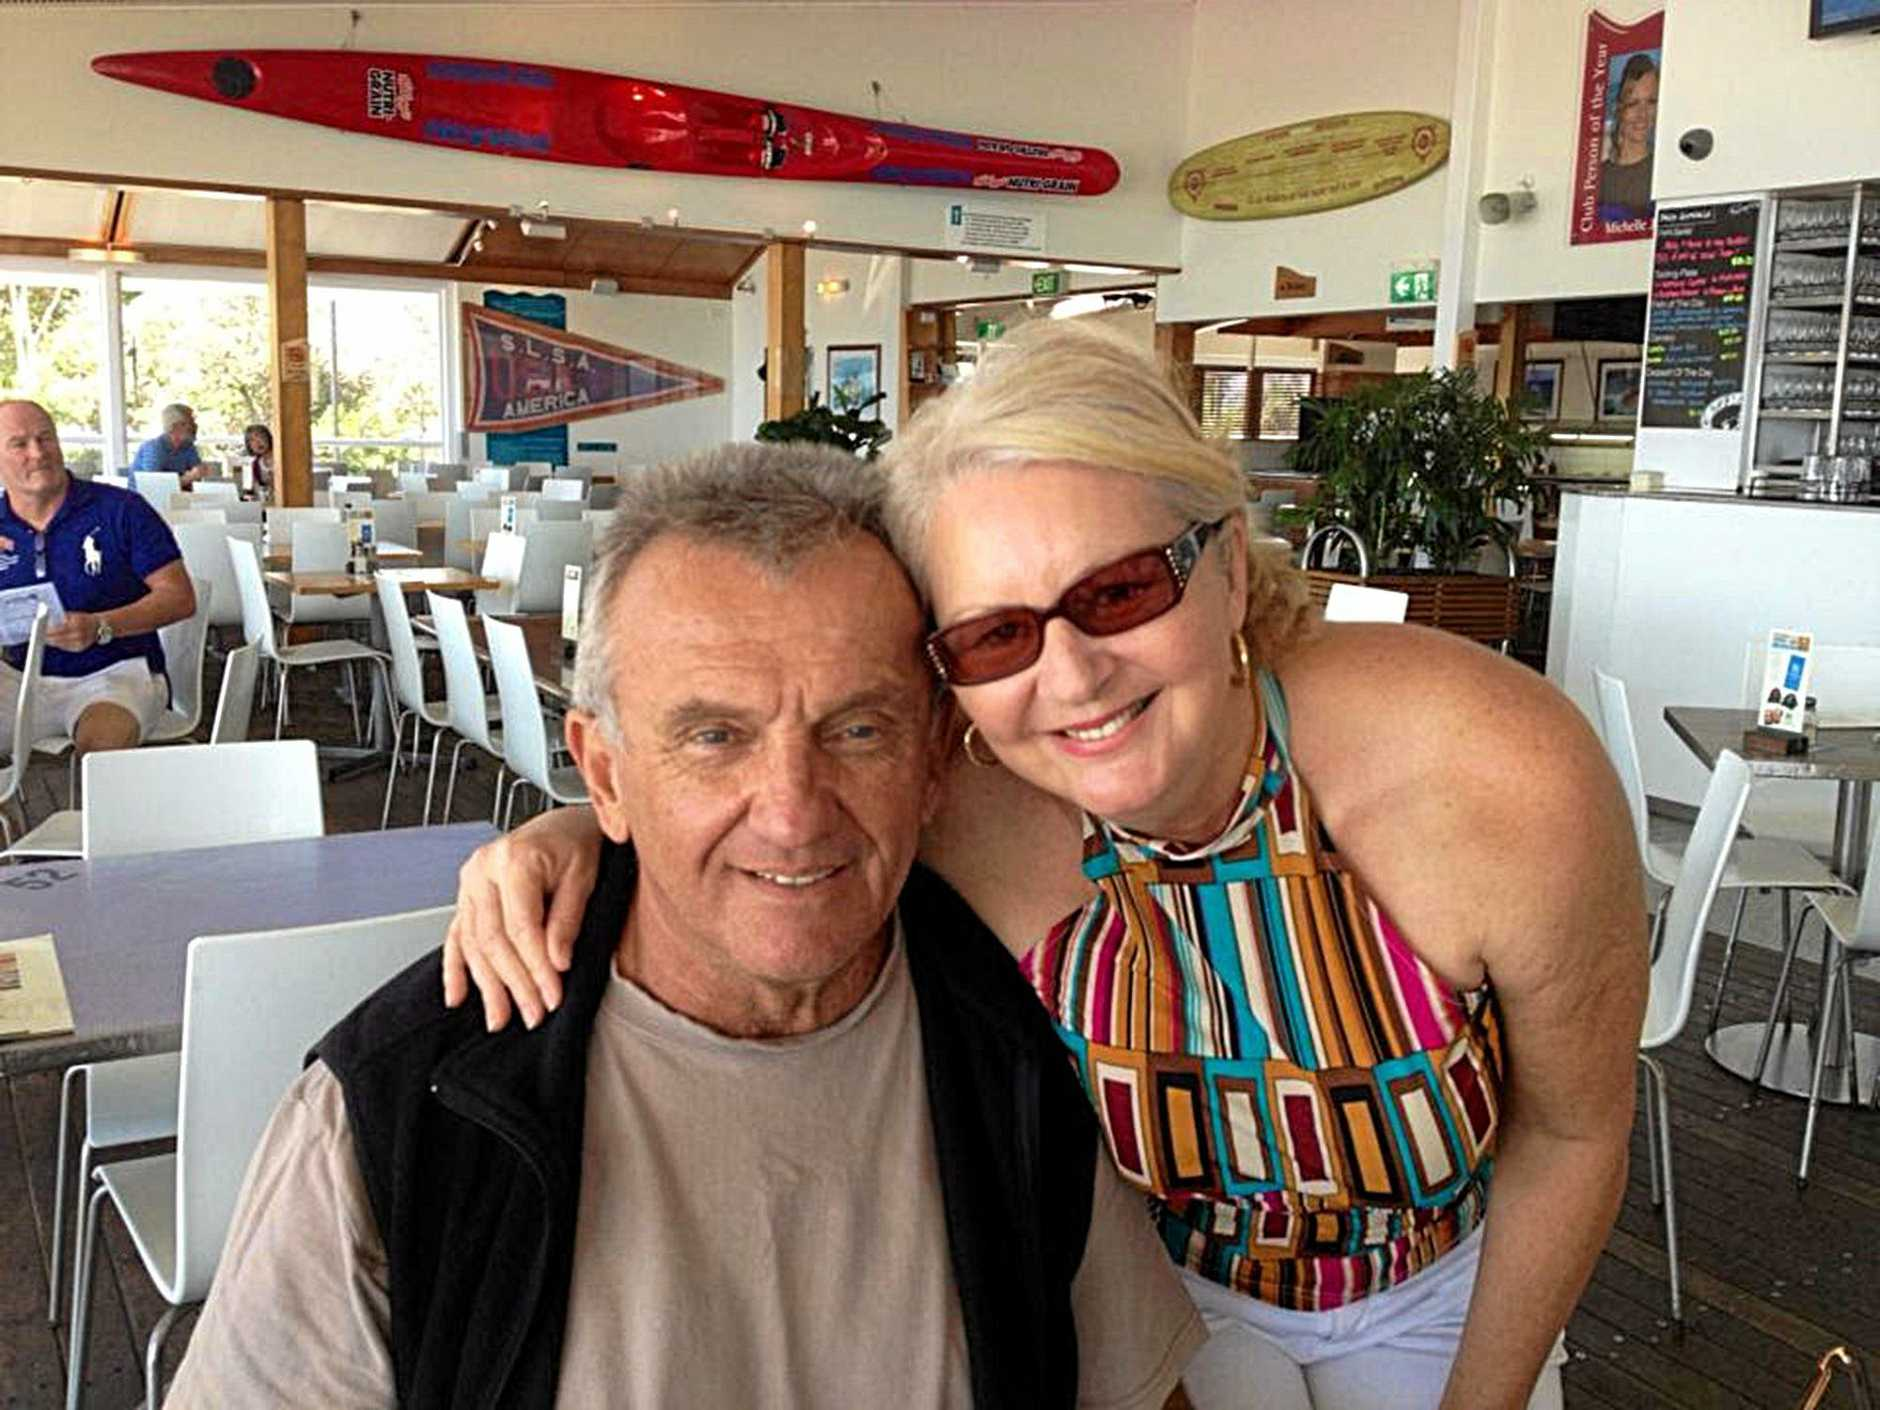 Facebook photos of George Gerbic and Lindy Williams.